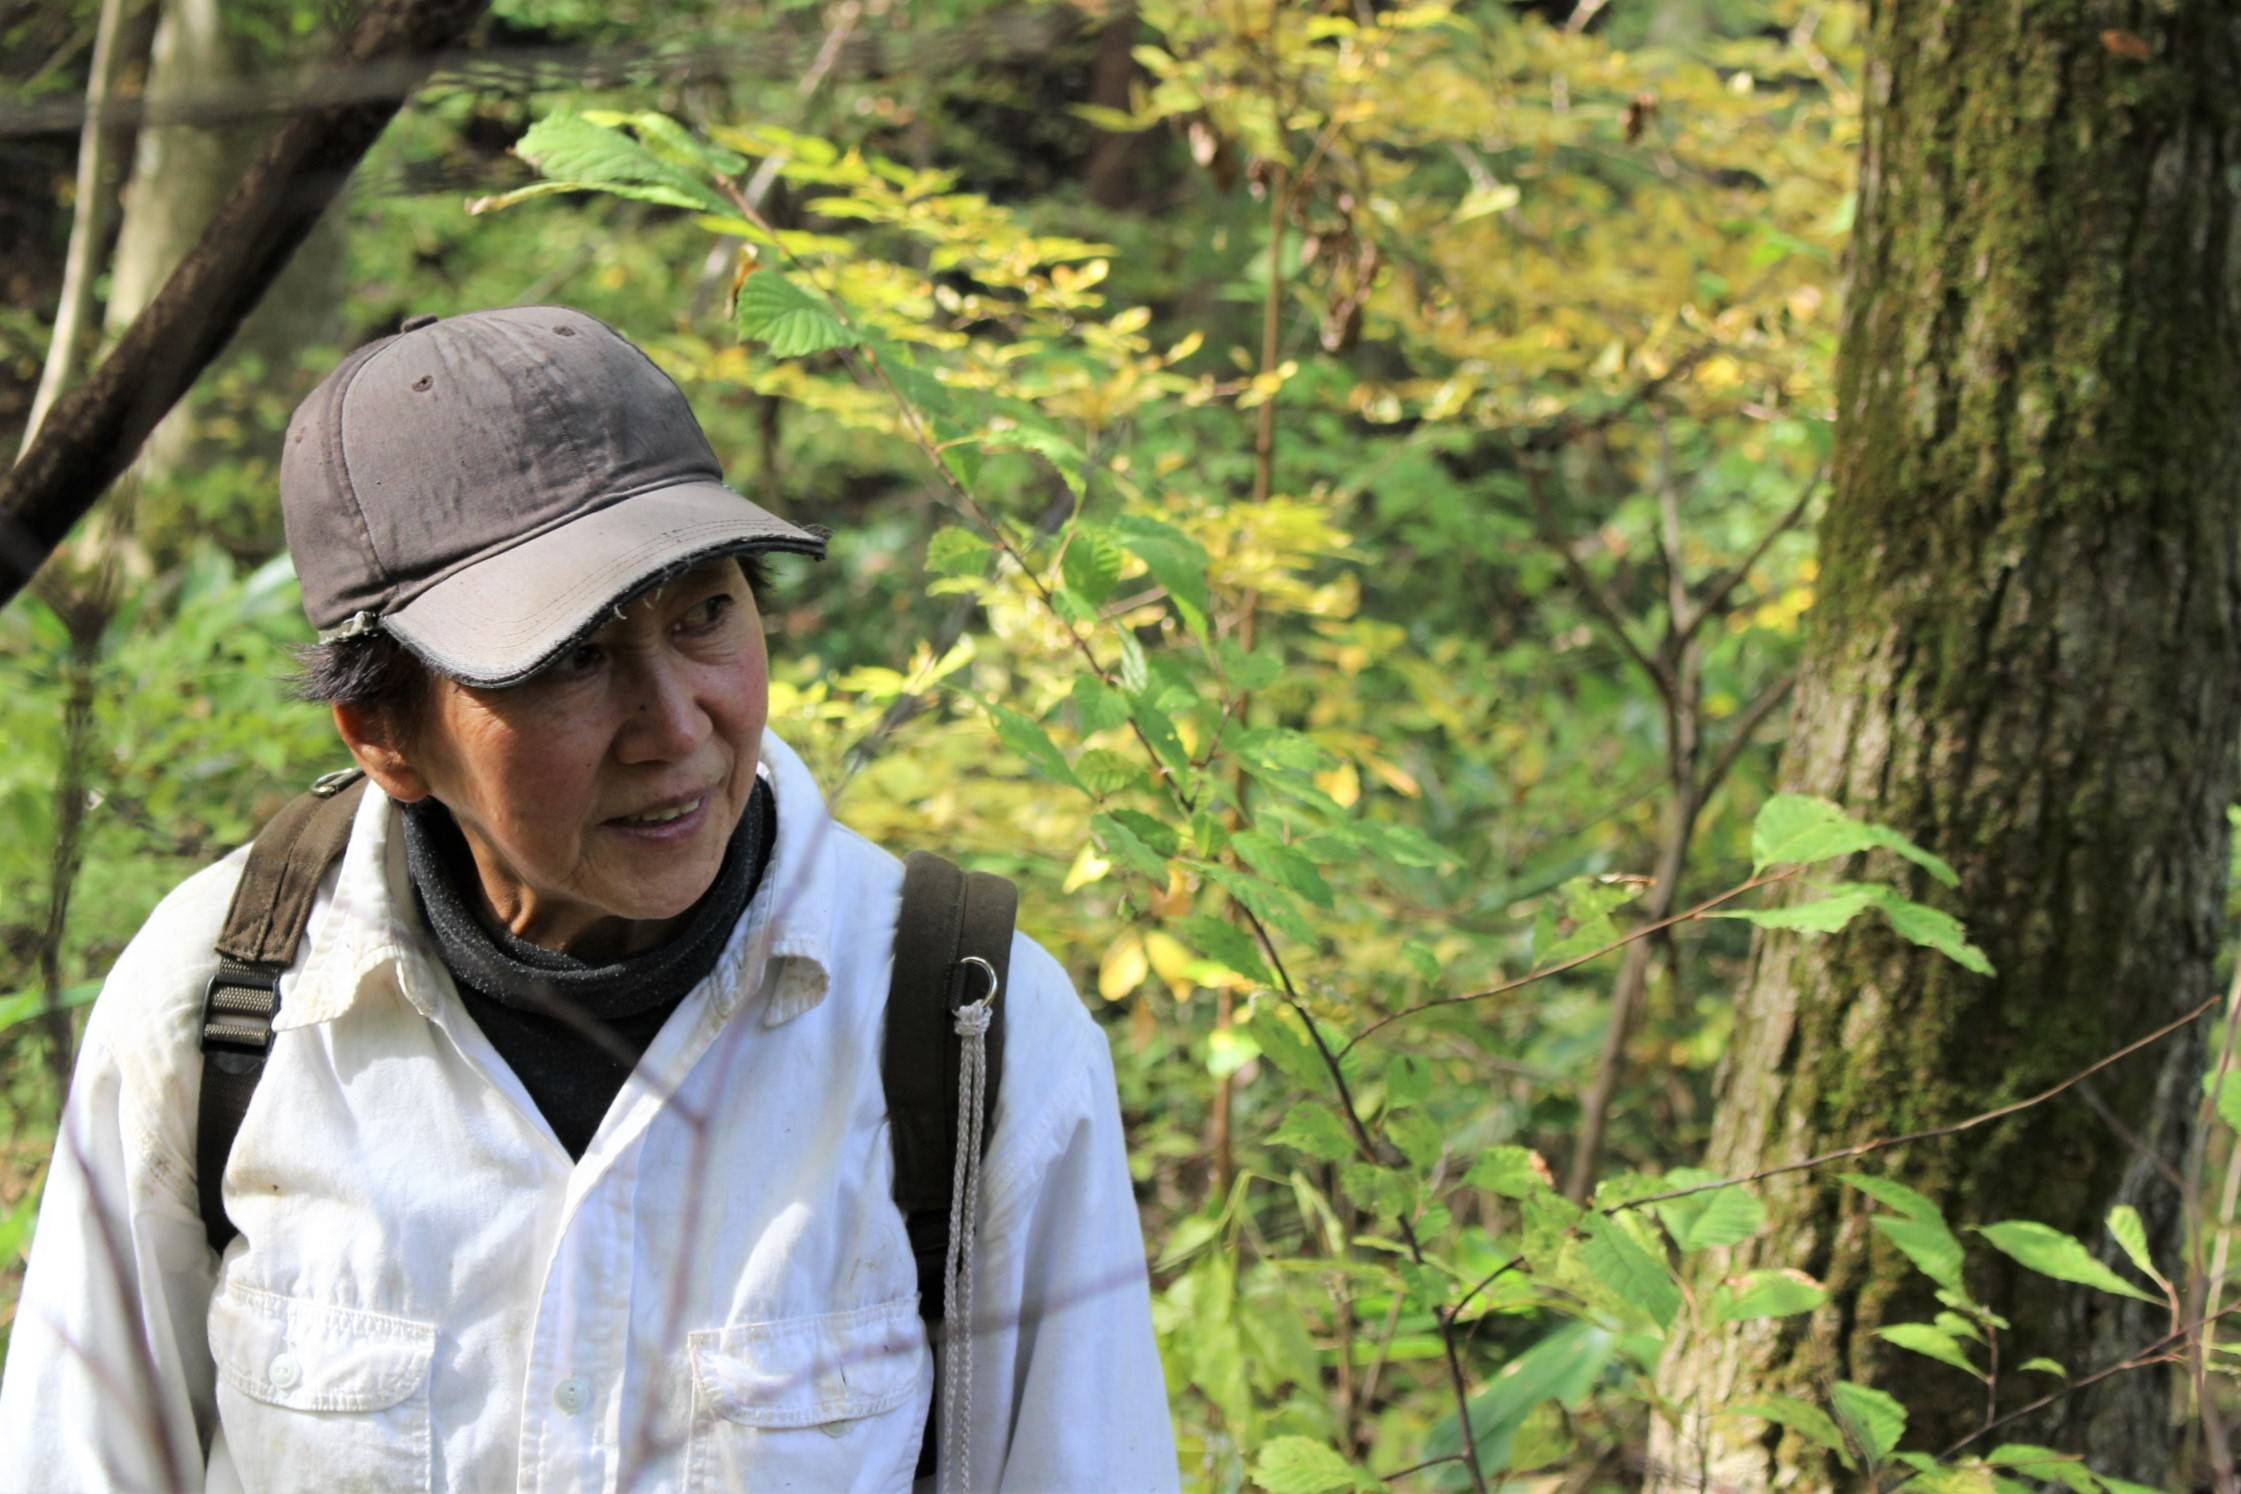 """Mushroom master: """"I have to keep ahead of all the 'rivals' who are also out here looking for mushrooms,"""" says Ikuko Sato. 